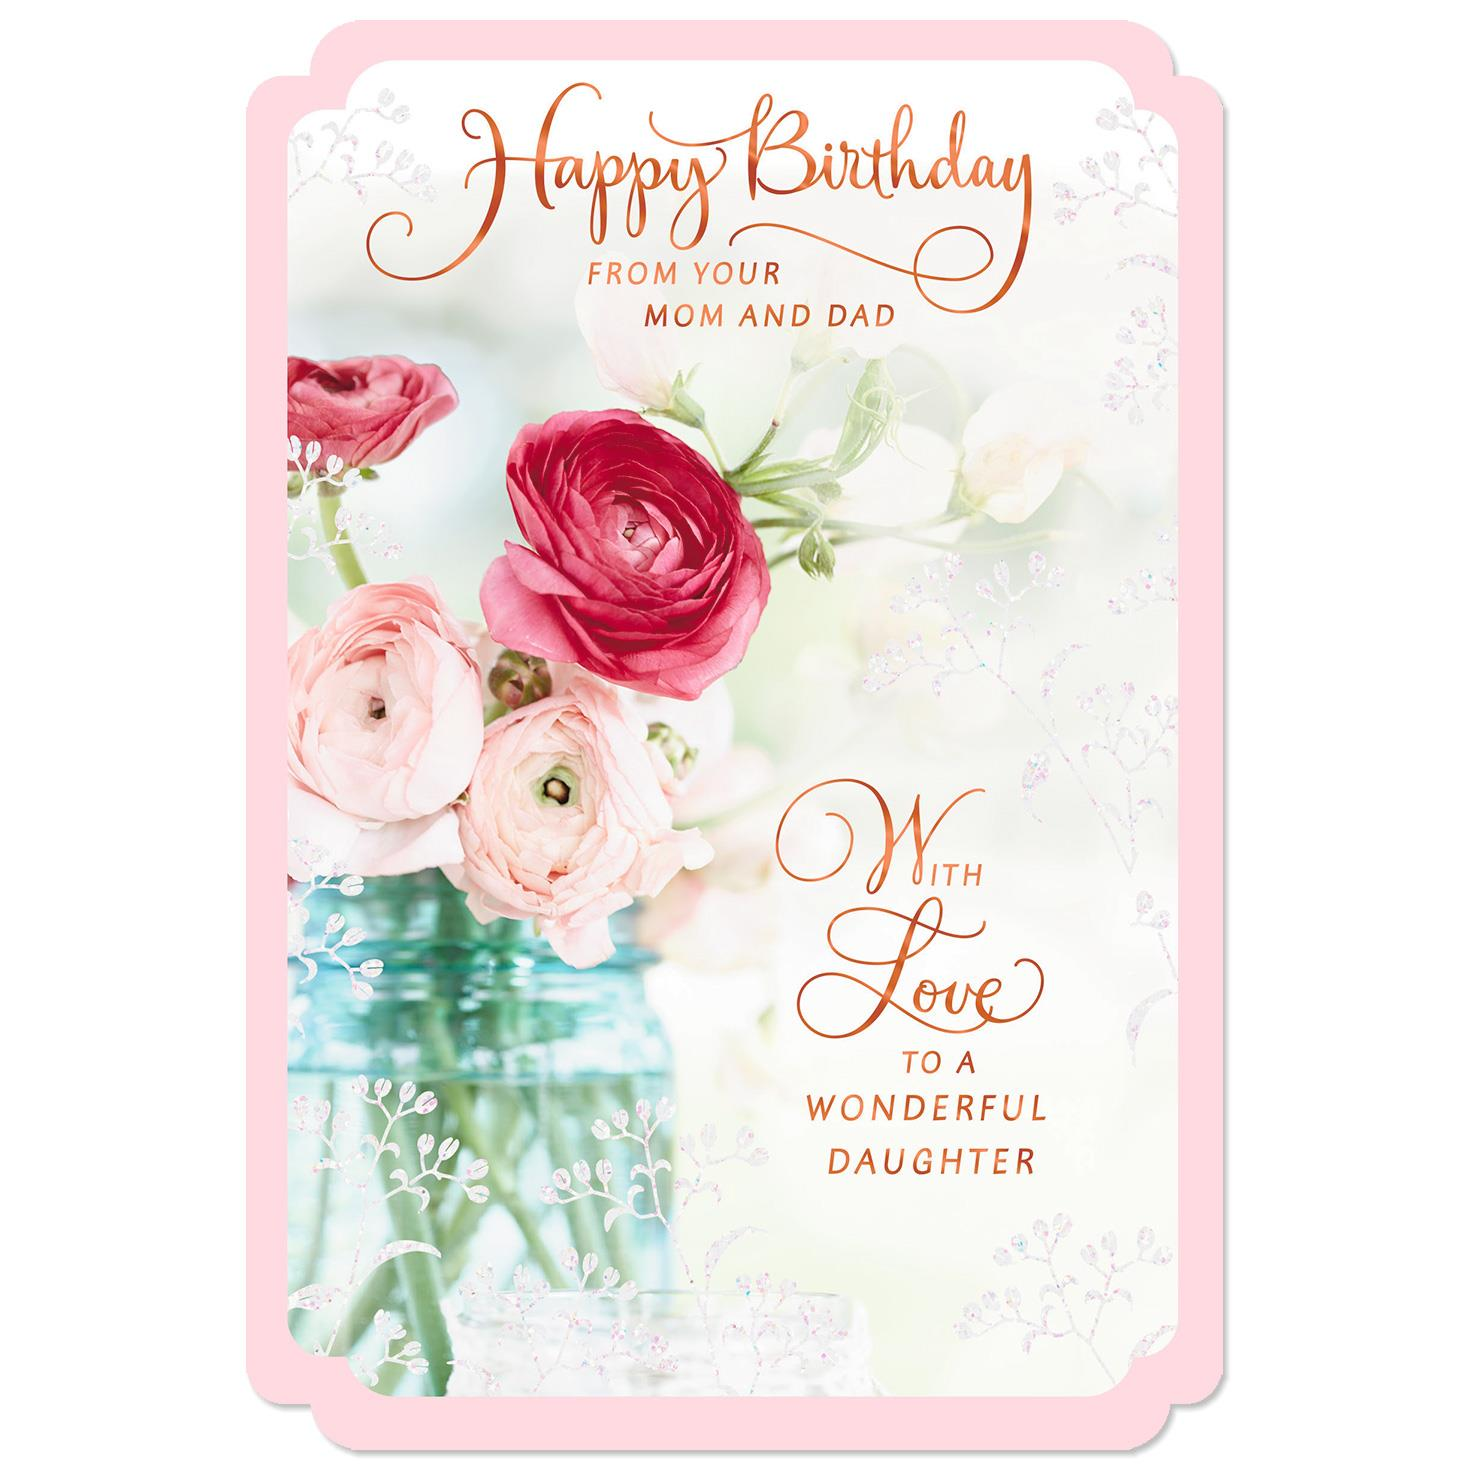 This is an image of Dramatic Hallmark Printable Cards